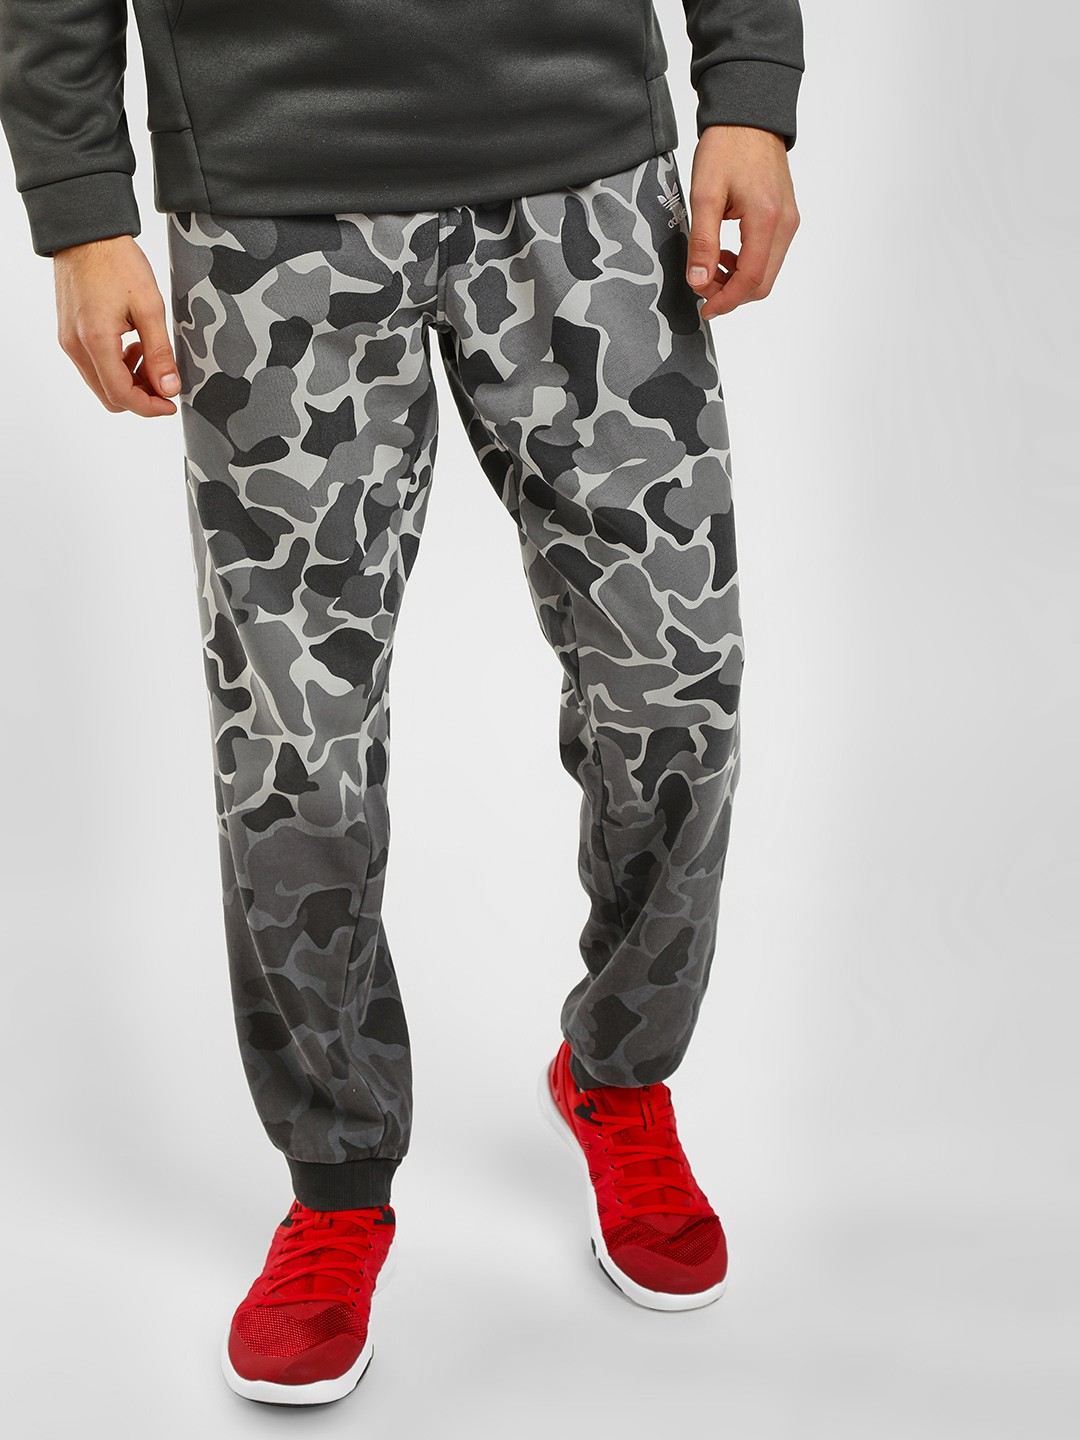 Adidas Originals Multi Camouflage Dip-Dyed Pants 1